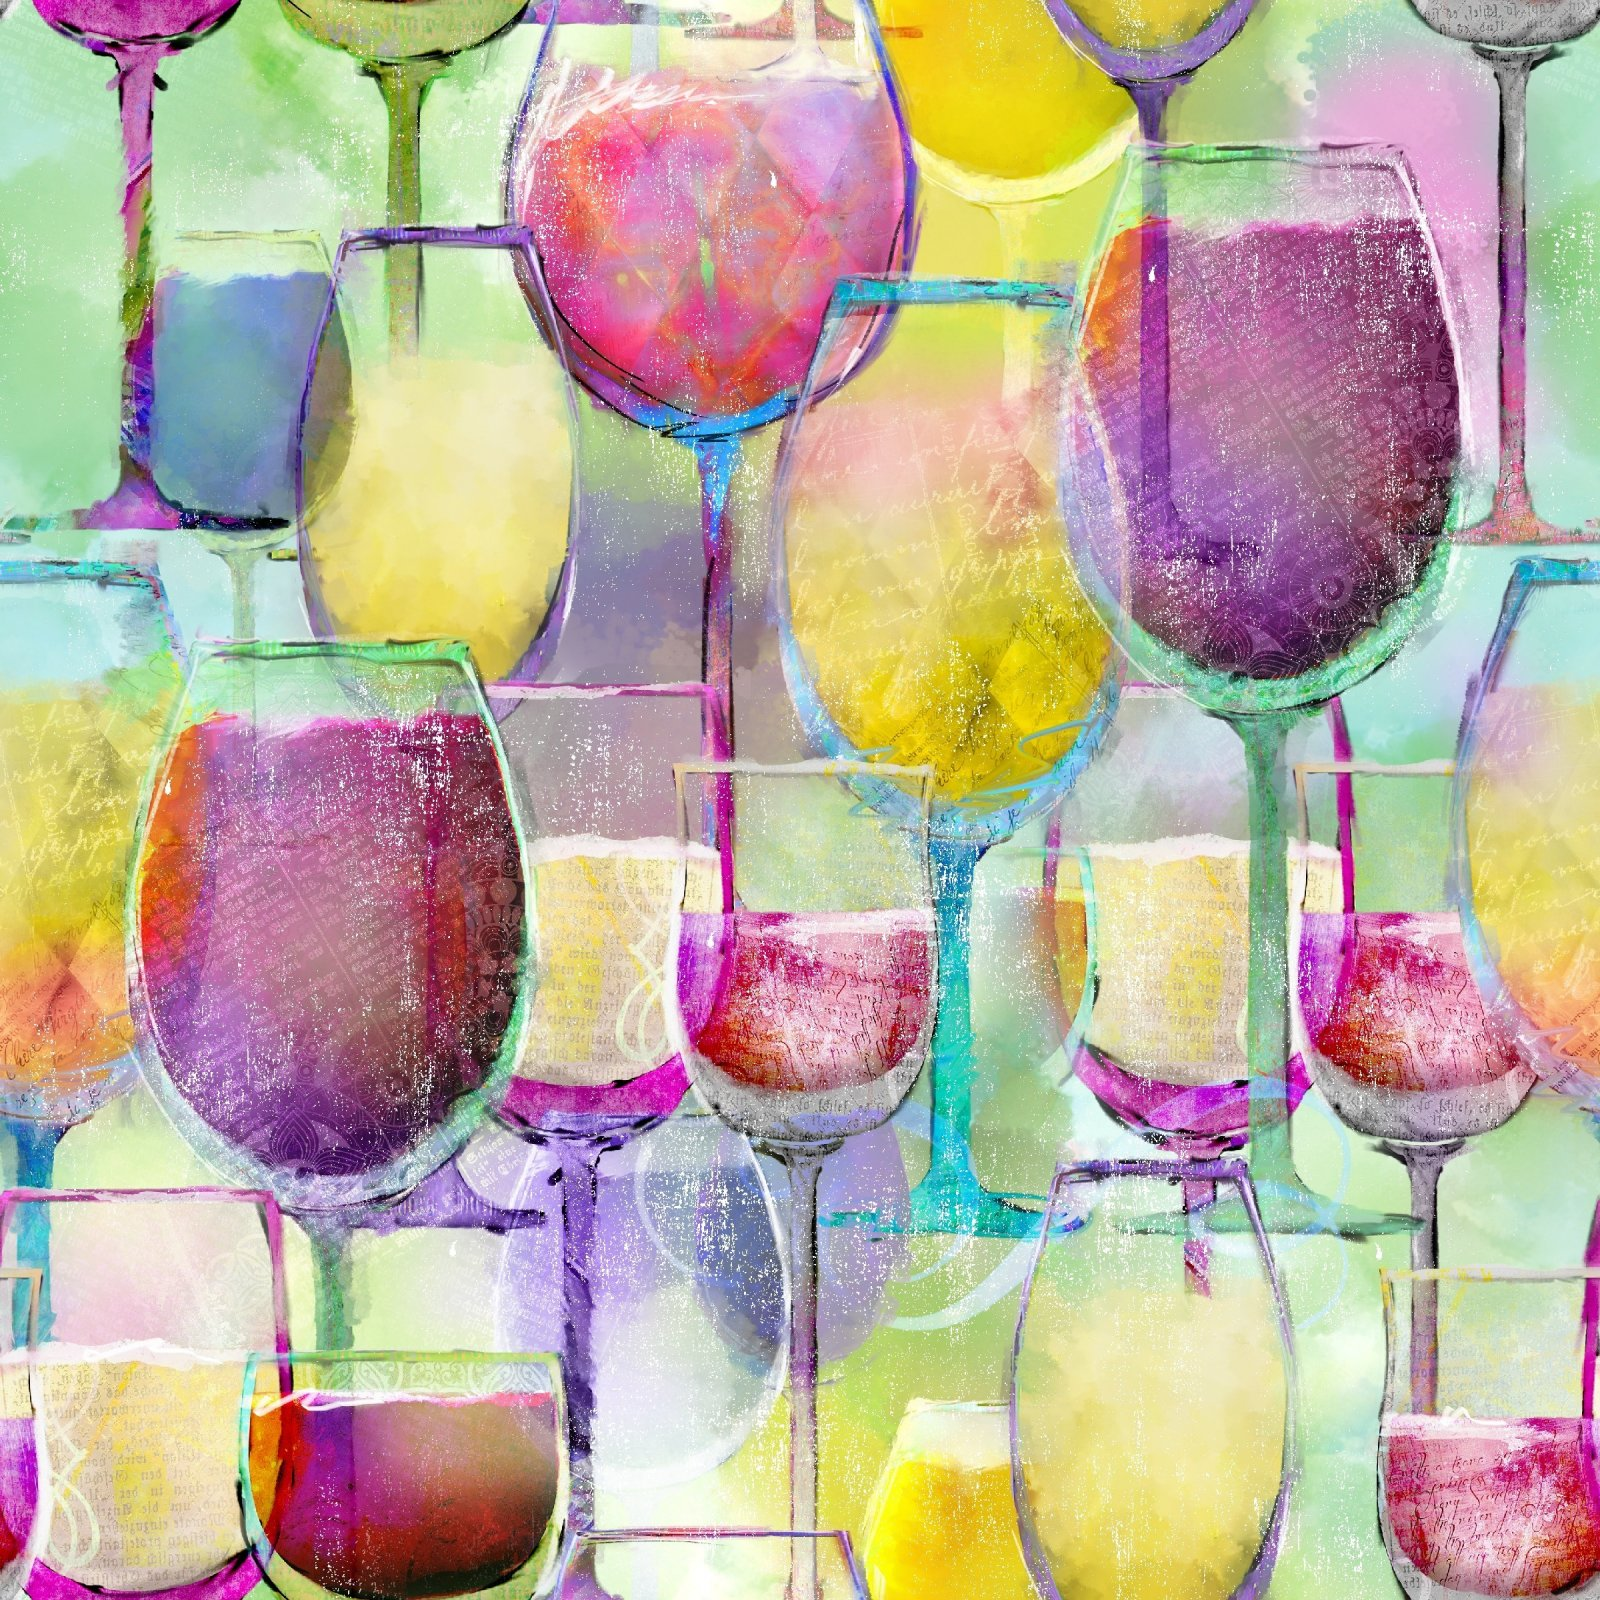 Sip & Snip - Wine Glasses  07/20